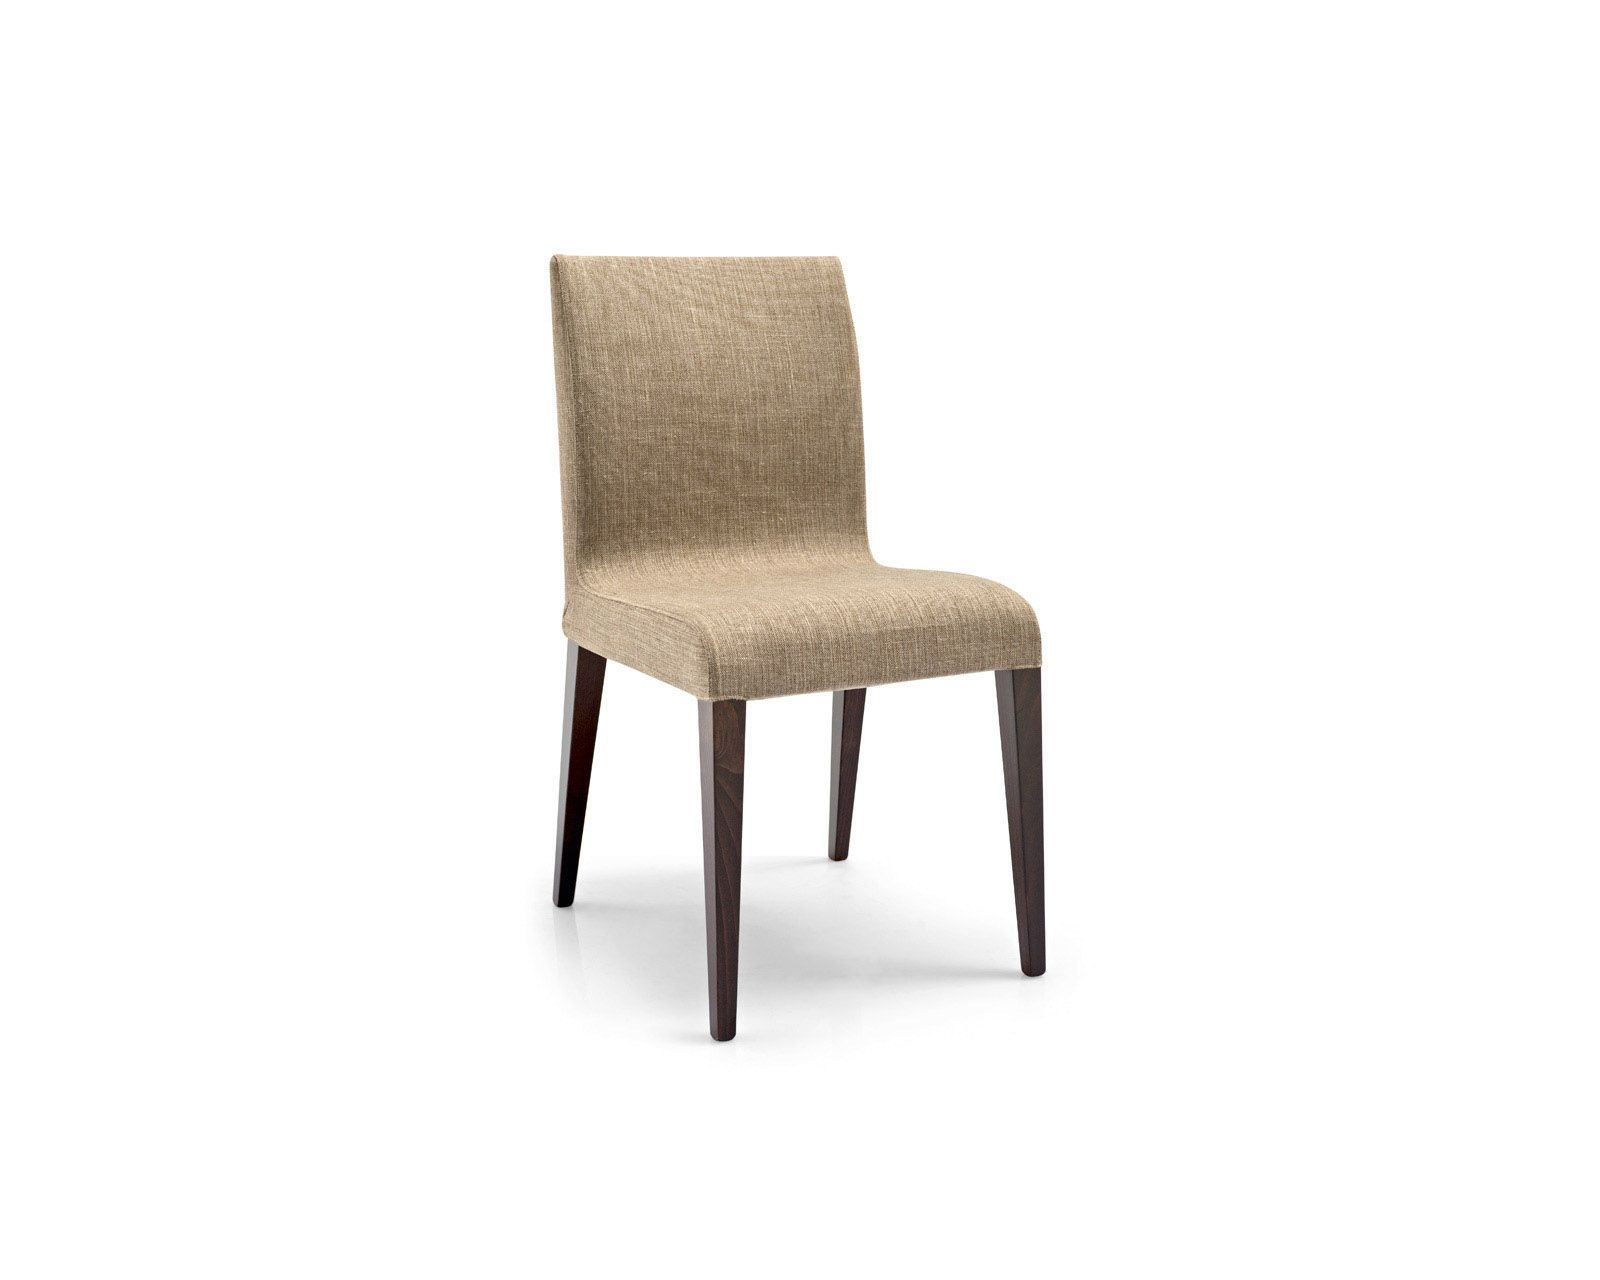 Awesome Eudora Upholstered Chair With Removable Cover Calligaris Gamerscity Chair Design For Home Gamerscityorg